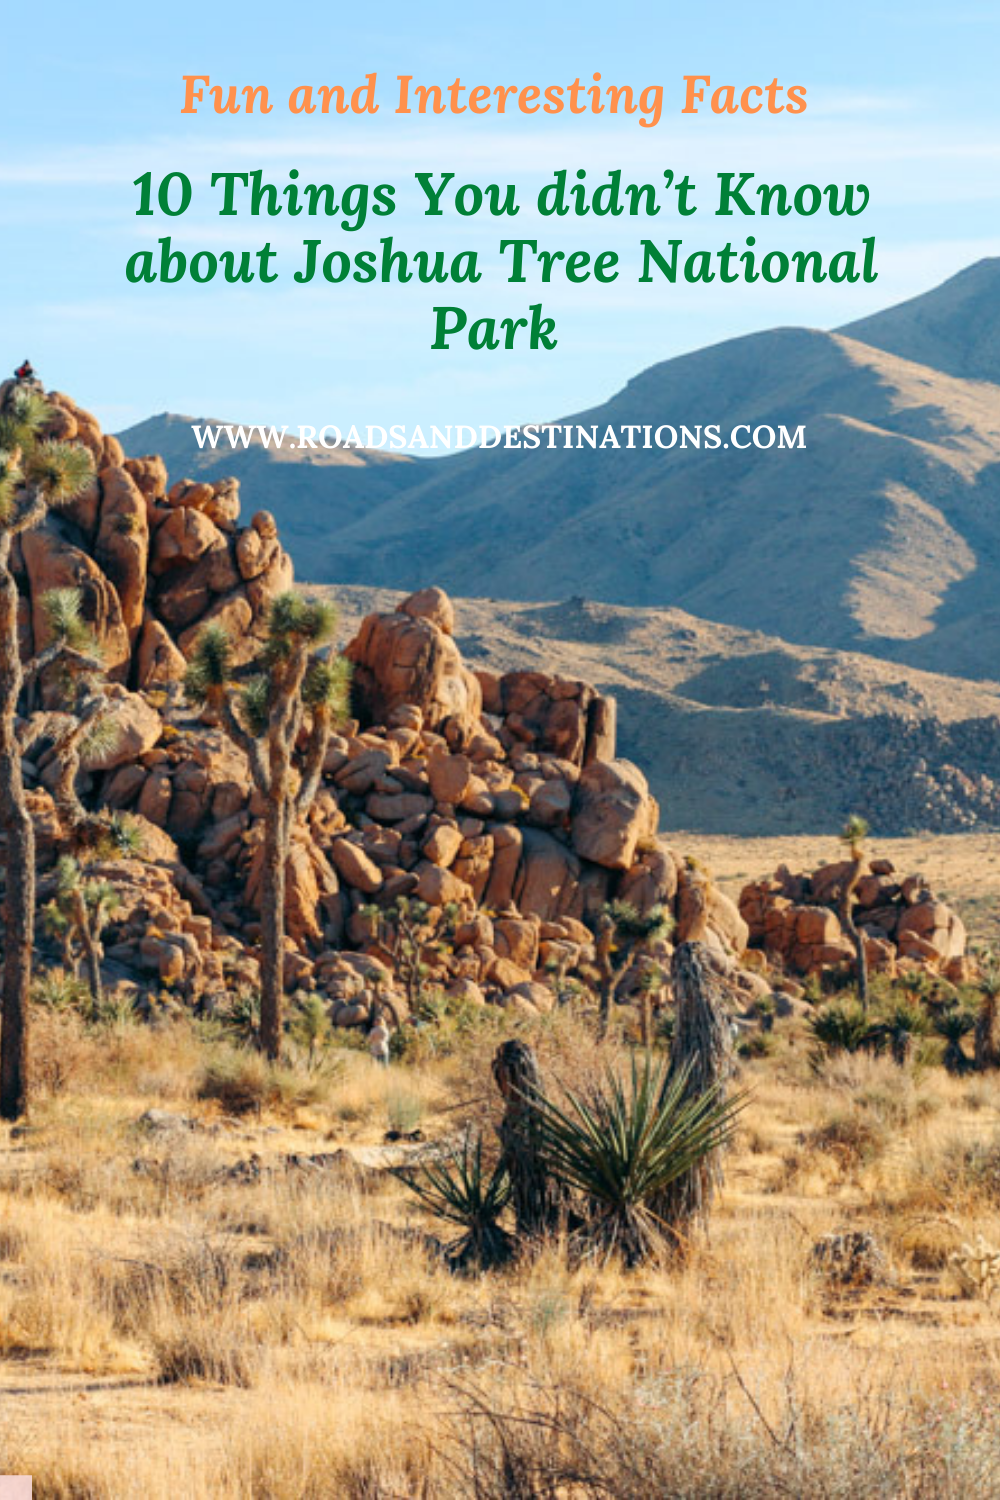 Things to know about Joshua Tree National Park - Roads and Destinations